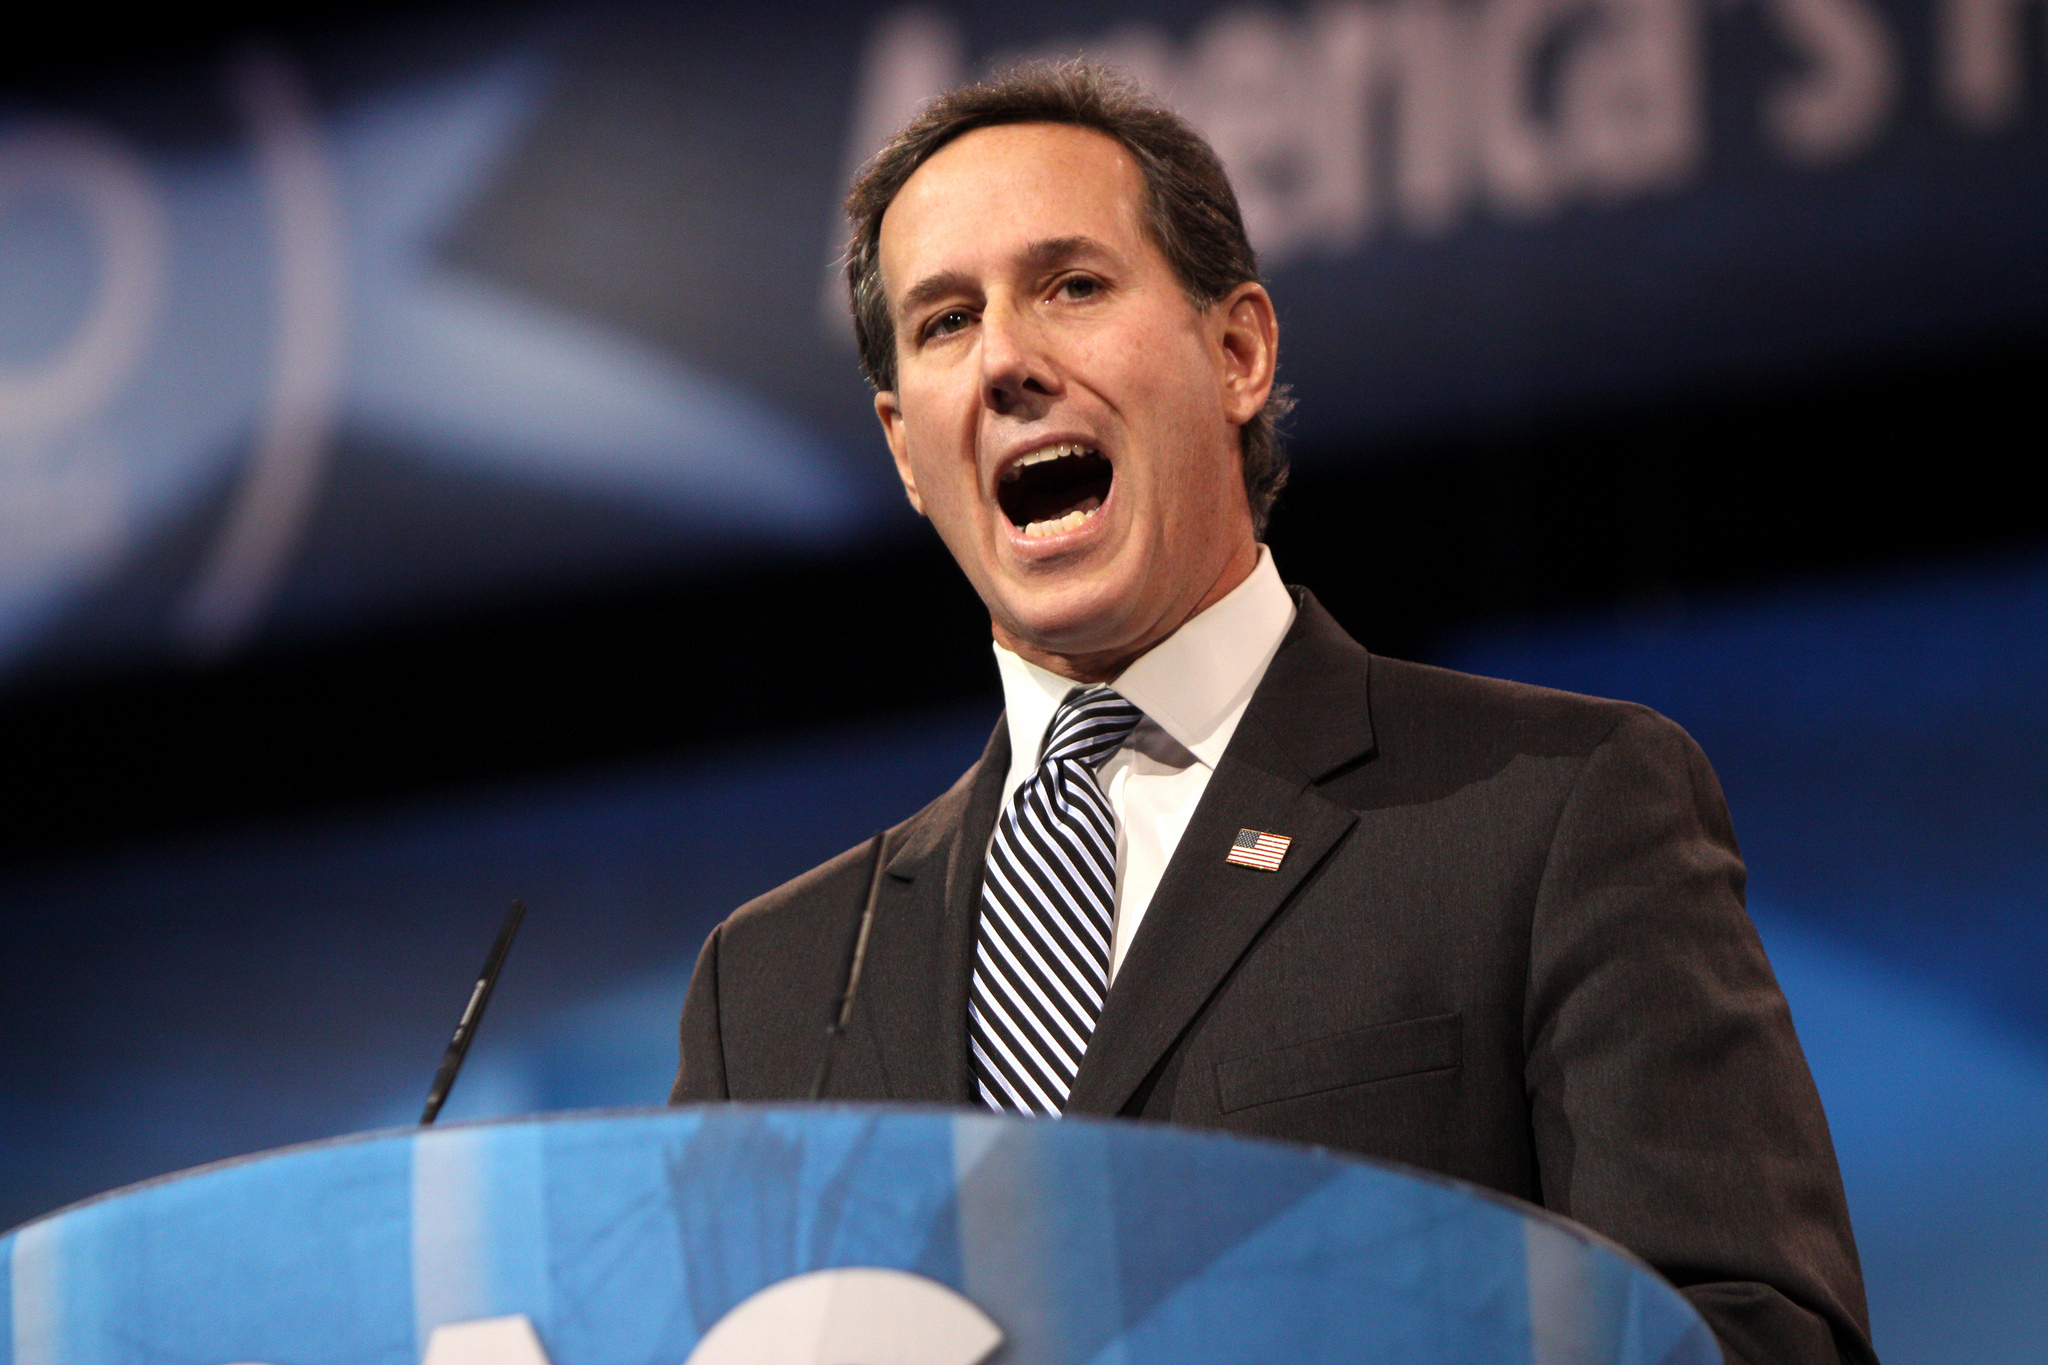 Santorum's Immigration Policies Would Harm Immigrants and American Workers